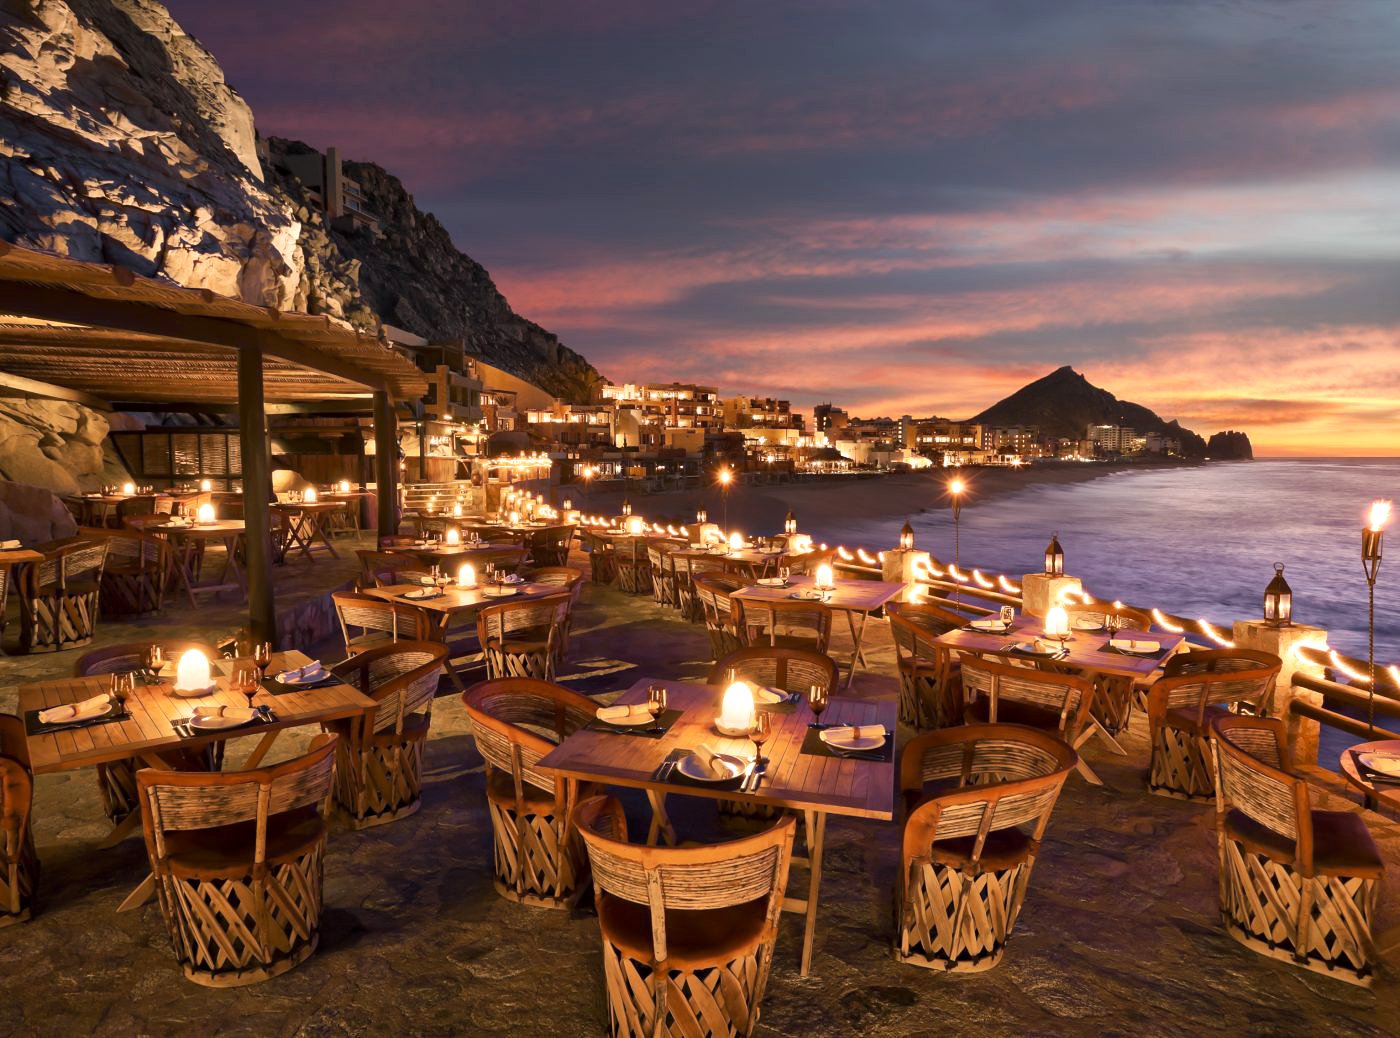 sunset outdoor seating